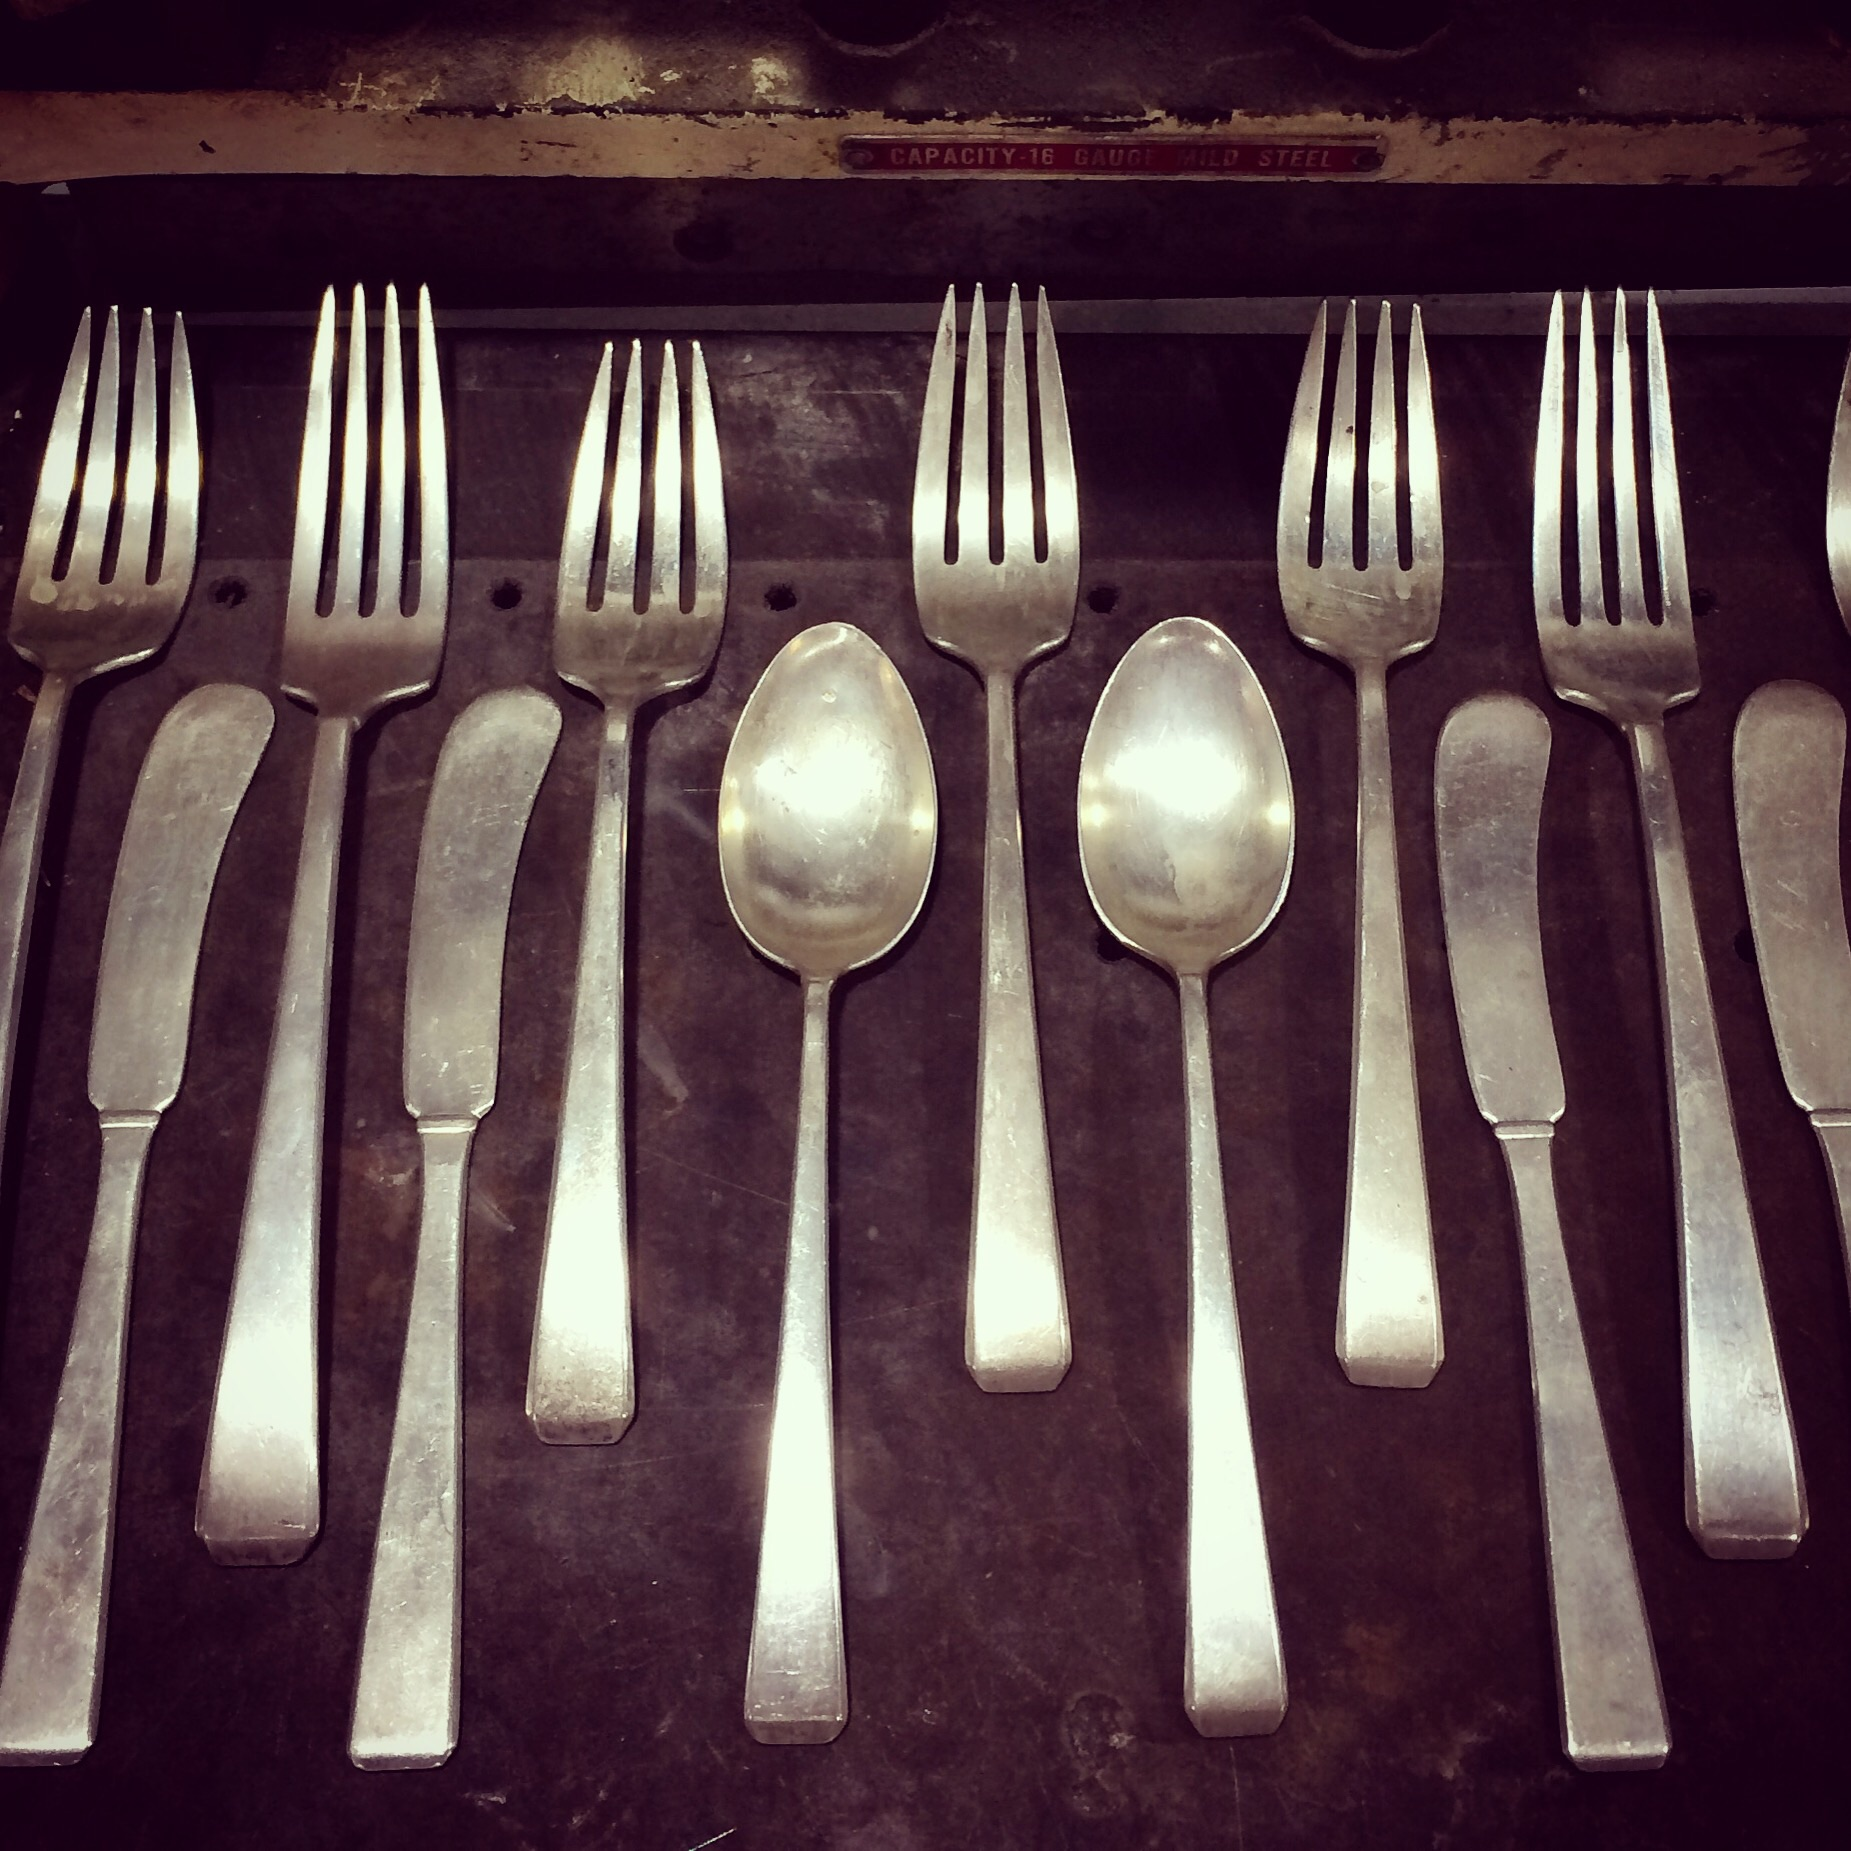 ...ready to cut and melt pieces of history (sterling silverware) for a new life as artisan jewelry.